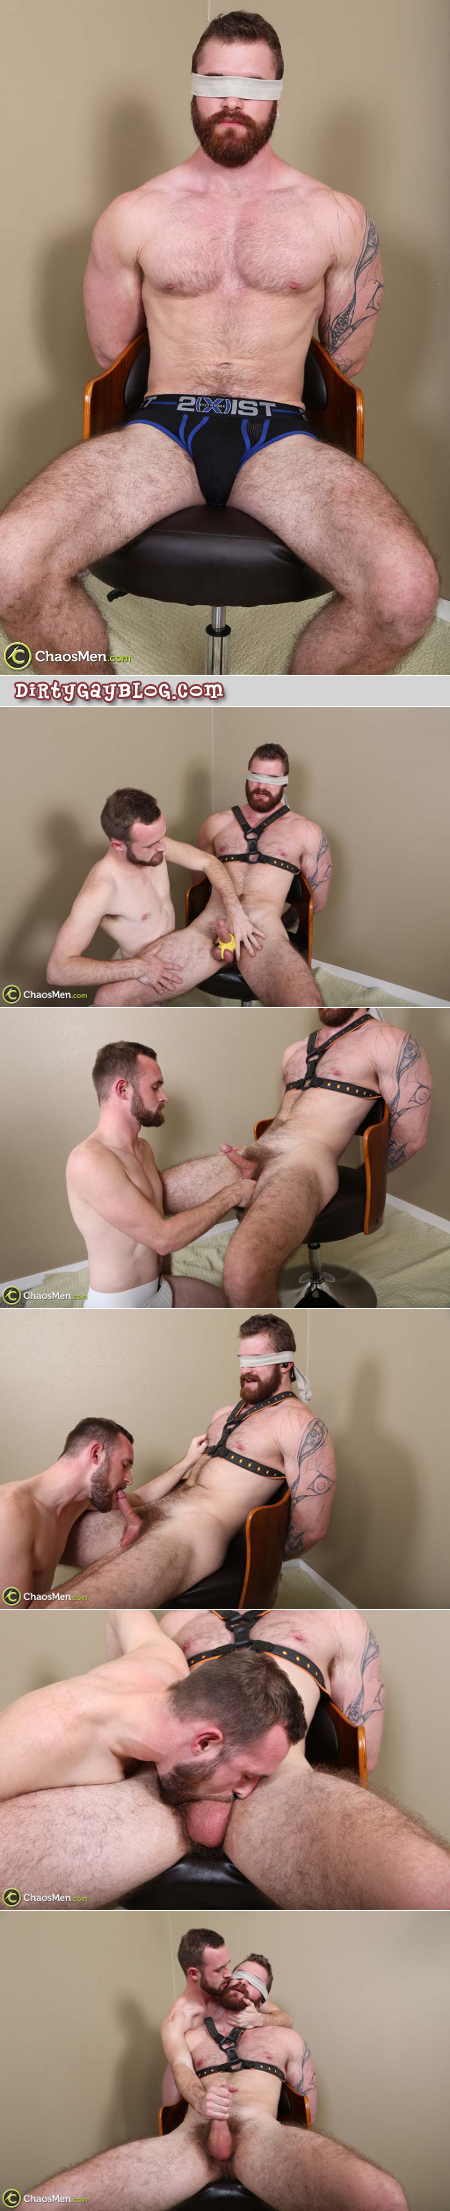 Straight ginger muscle man being edged during sensory deprivation bondage.